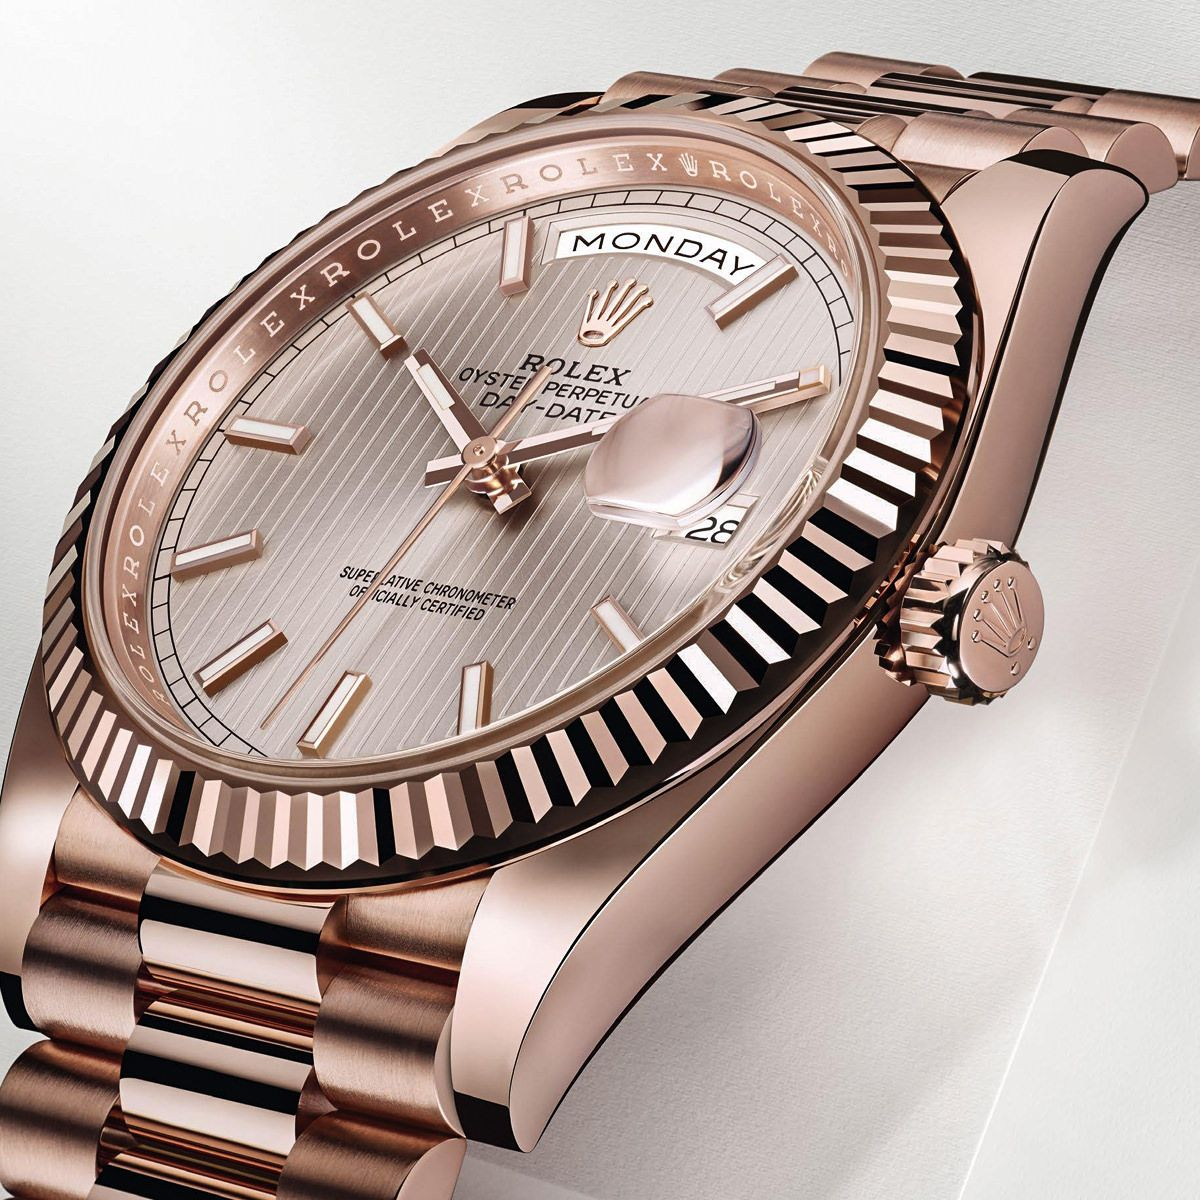 The Watch Parts That Make Rolex The World's Most Popular